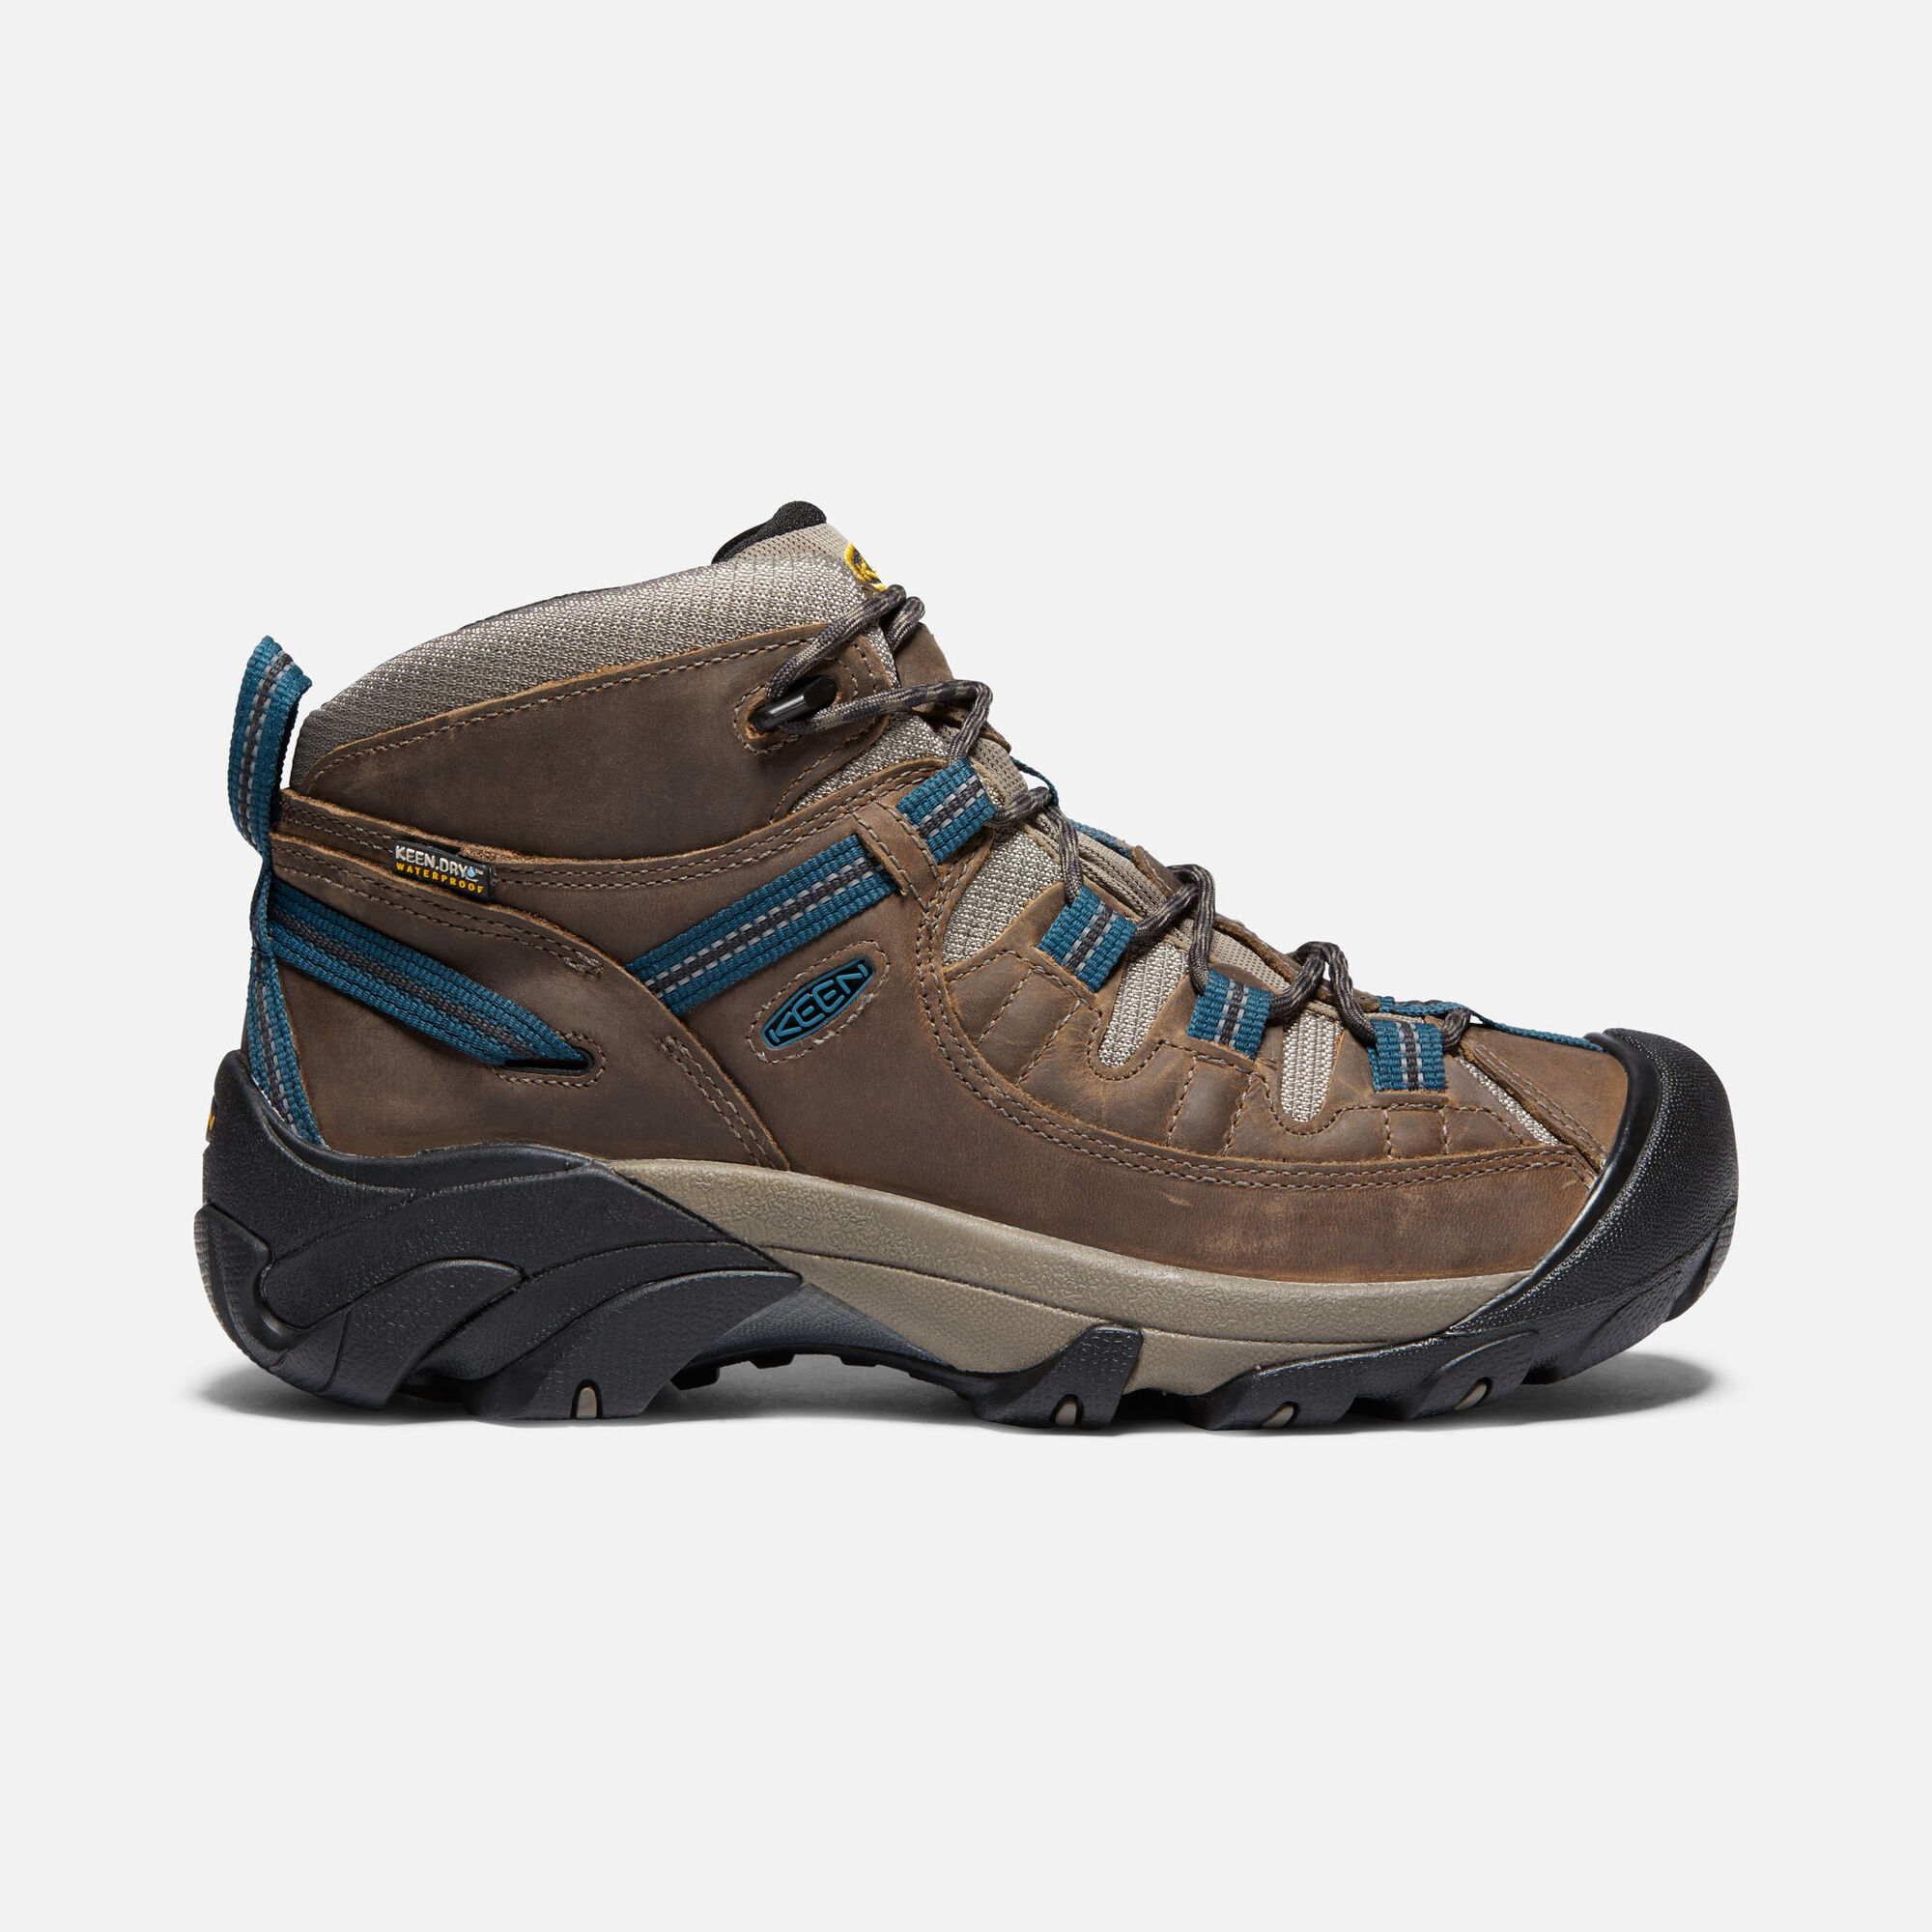 words men that has and for best mind of country comfortable shoes classic hiking spring women s it rambling boot the from walking brasher to looks outdoor hear kind comforter most you might reason good when a boots master